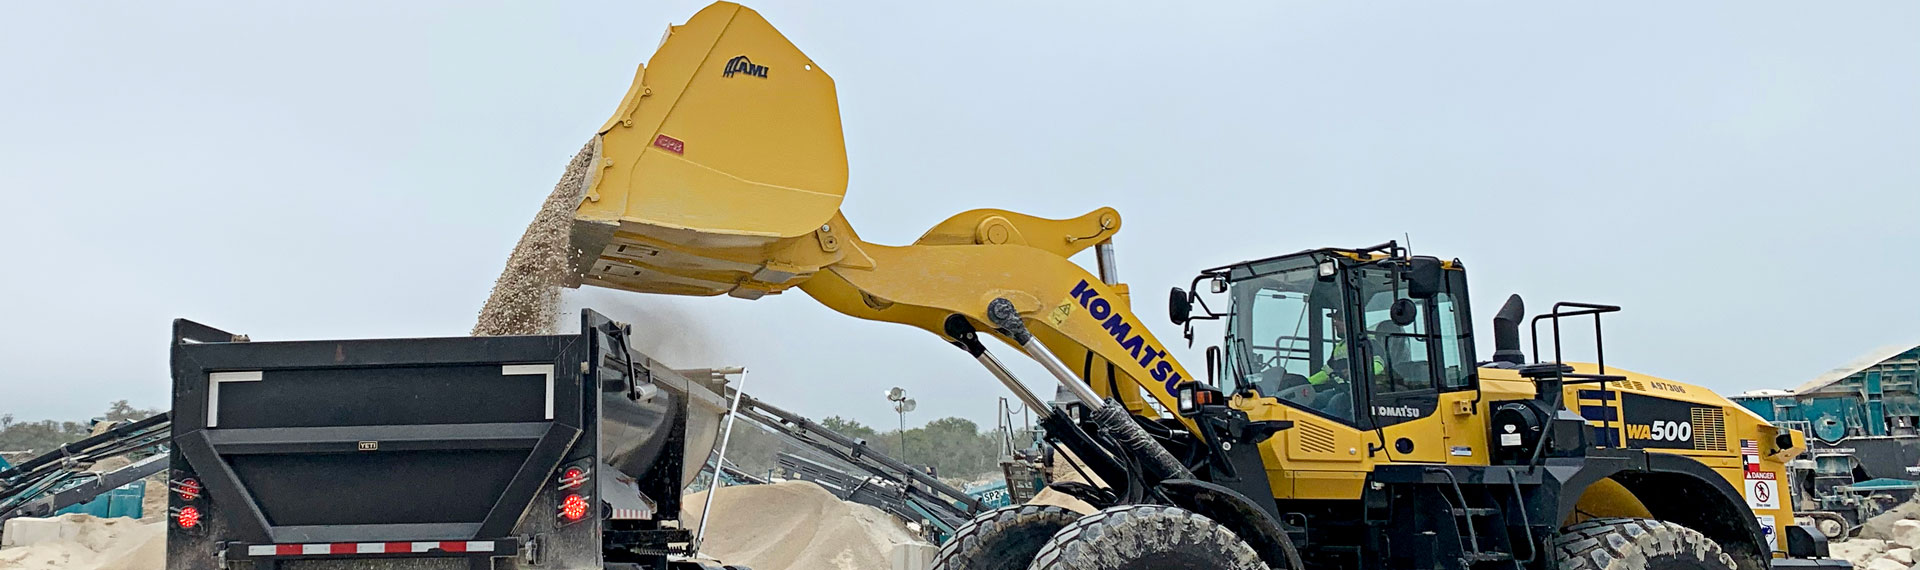 Canadian manufacturer uses Hardox® 500 Tuf to build a better heavy-duty bucket for quarries, recycling operations and municipalities.